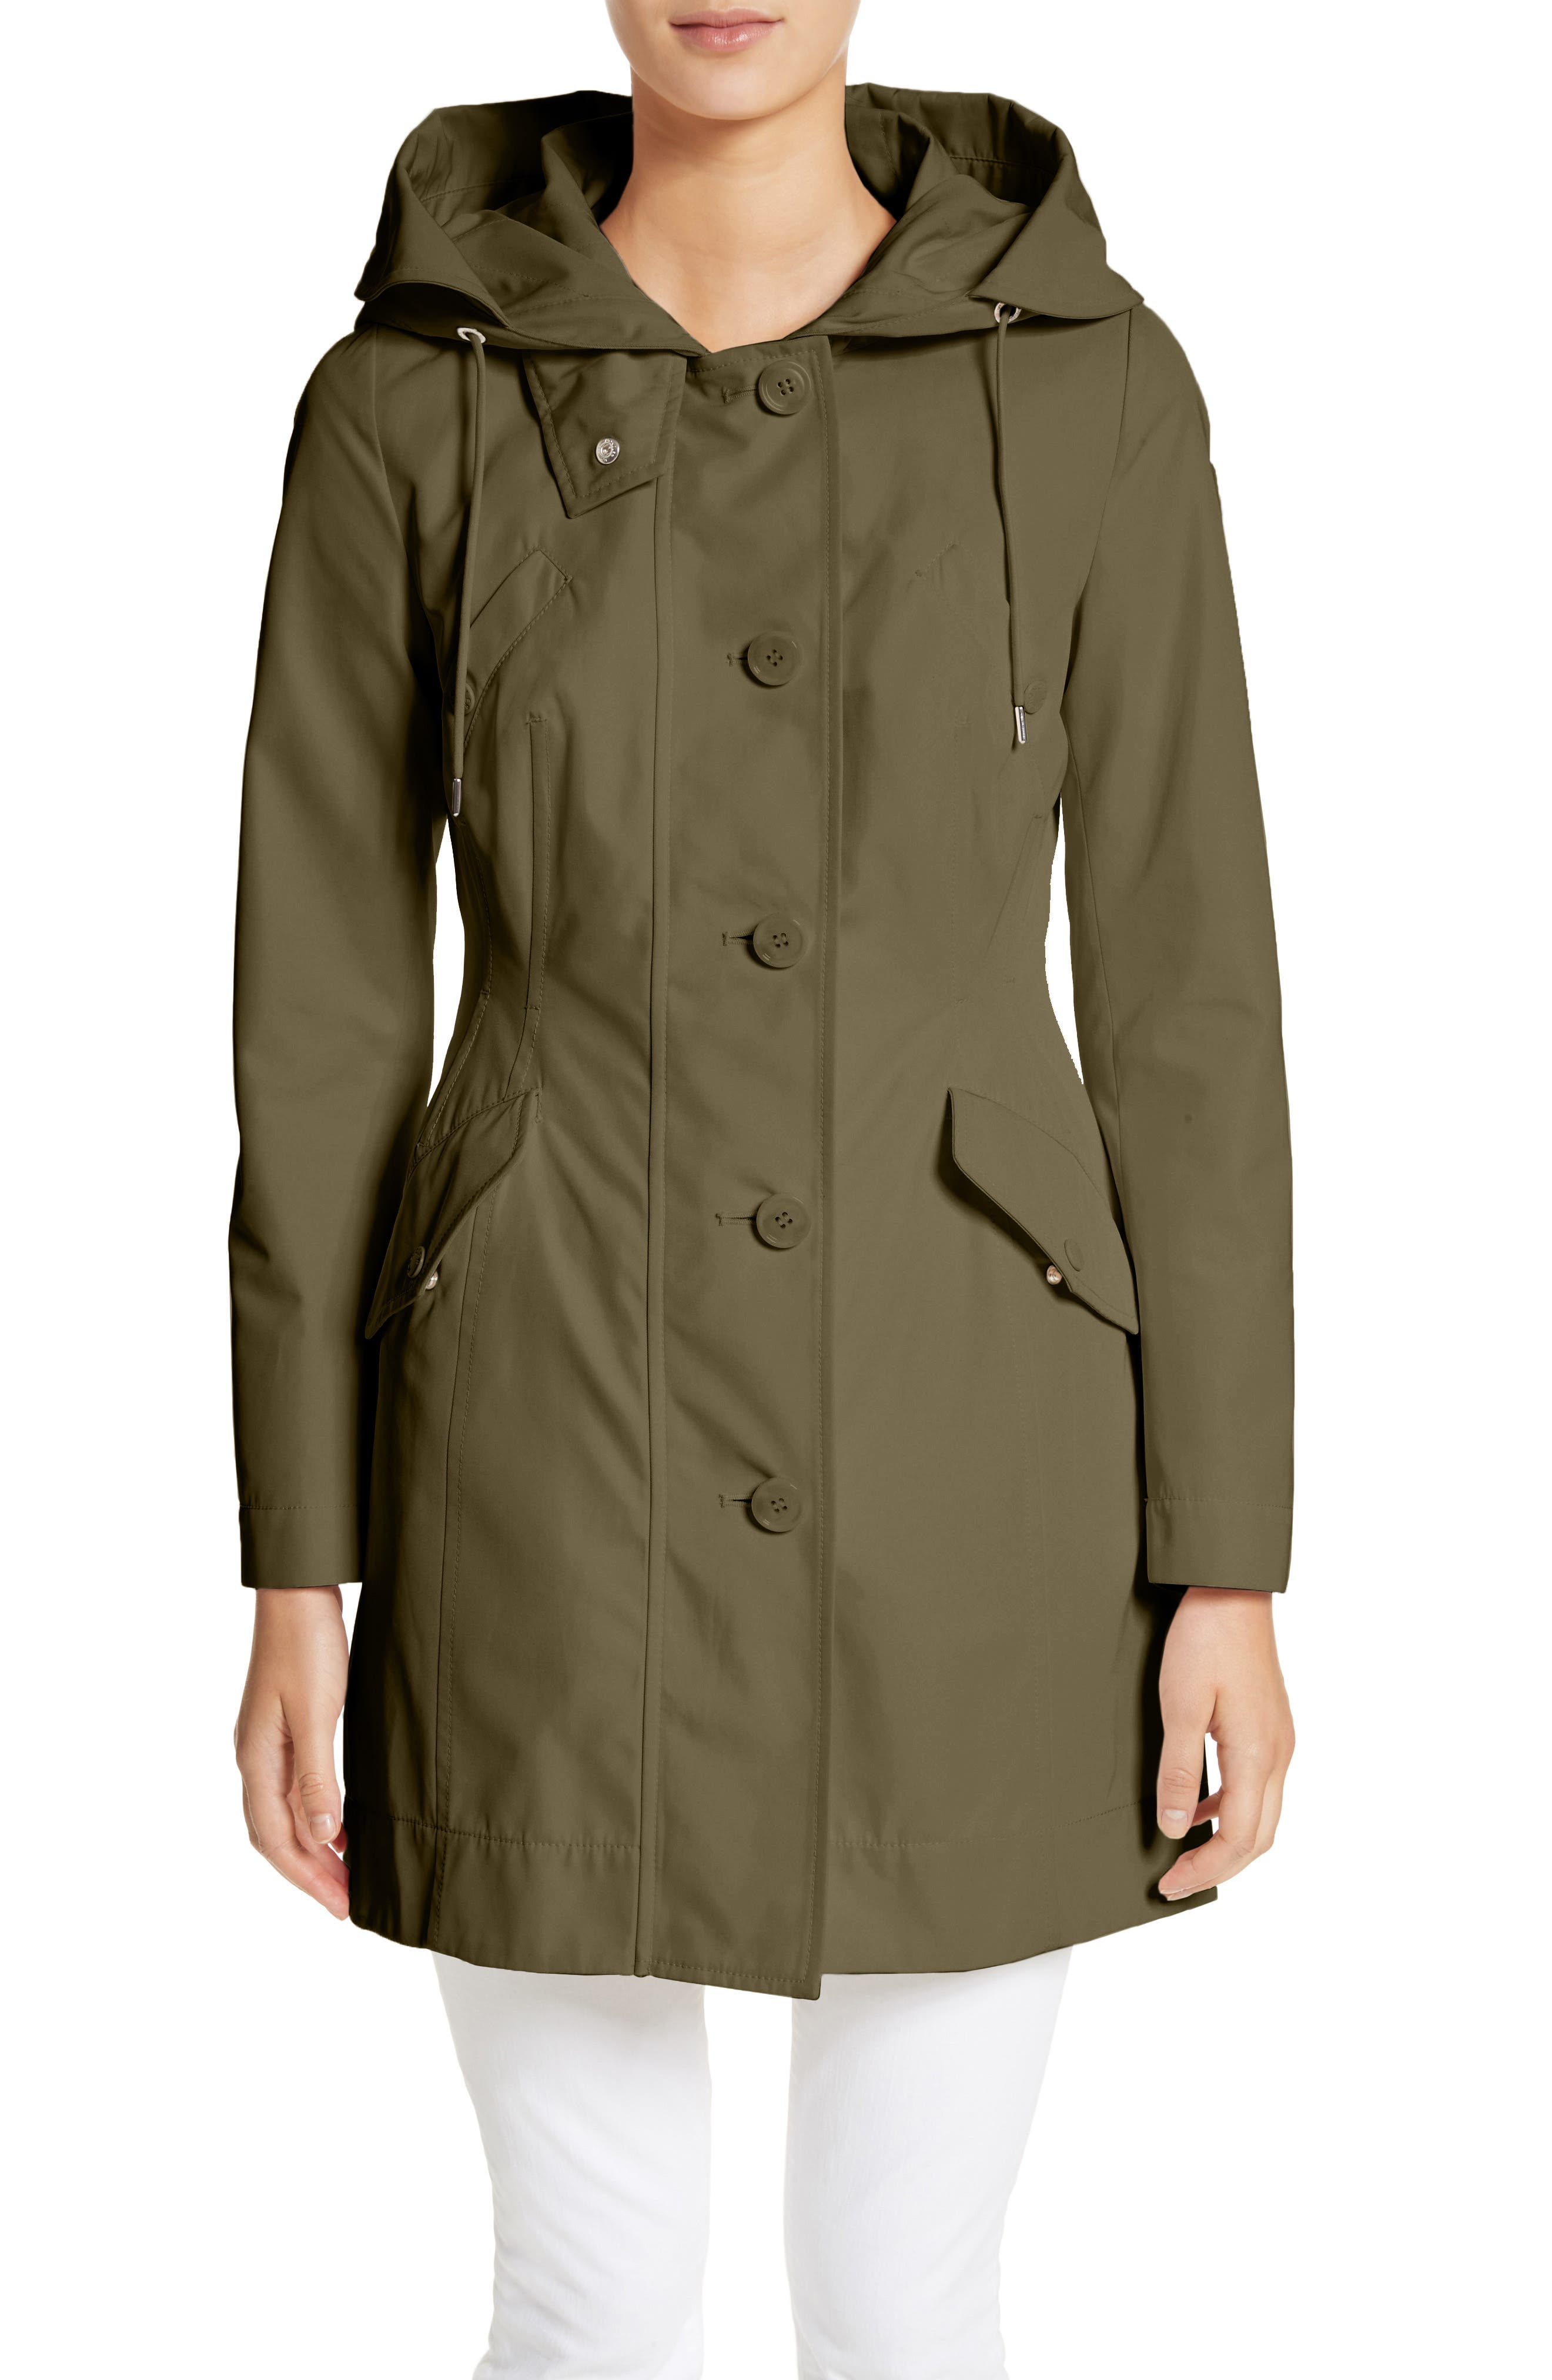 Audrey Water Resistant Hooded Raincoat,                             Main thumbnail 1, color,                             OLIVE